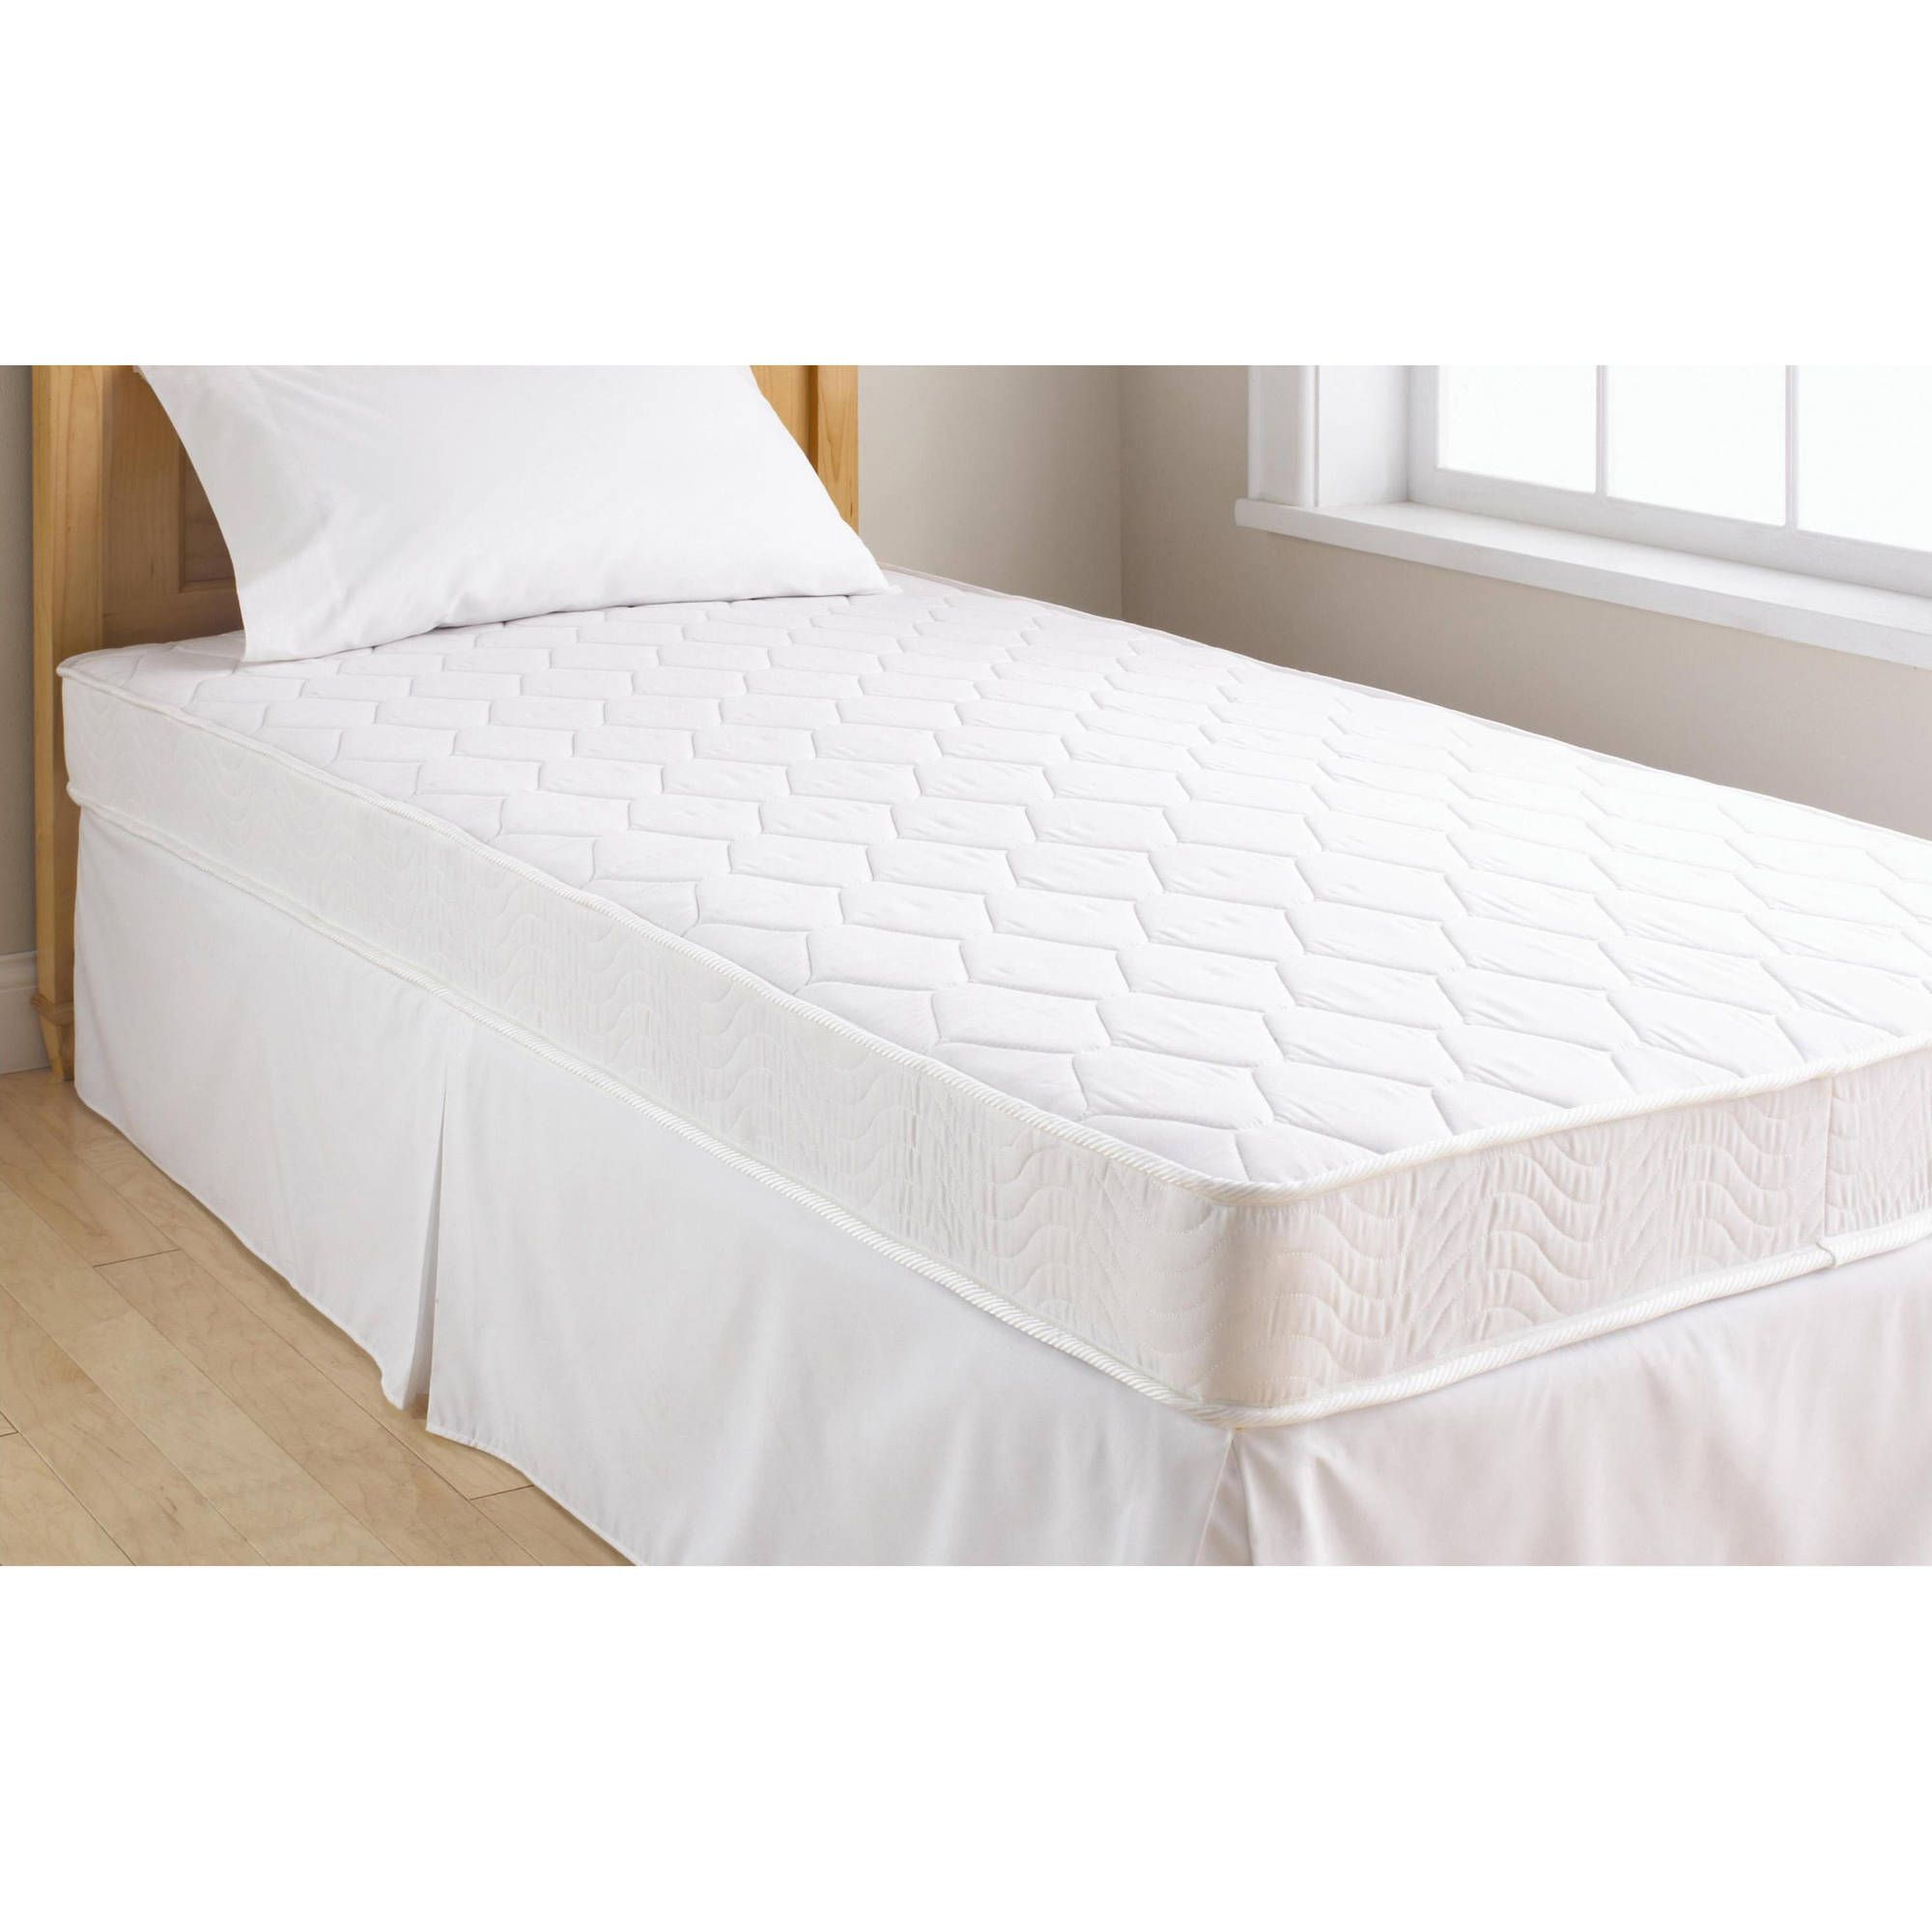 wid b sears home sleeper twin sharpen plush perfect size qlt op prod mattress eurotop hei mattresses accessories harlington serta